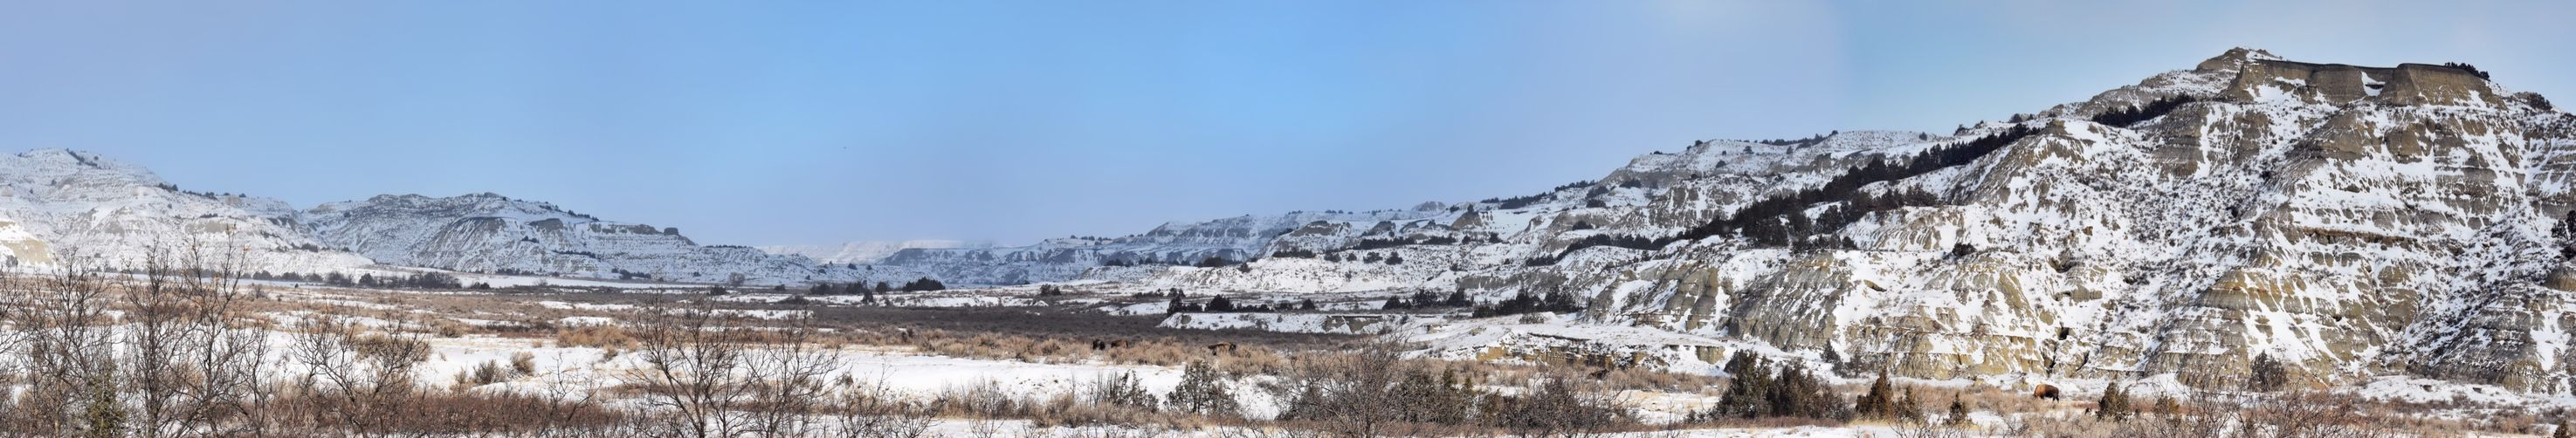 Pano of mountains in Theodore Roosevelts National Park EyeEmNewHere Panorama Snowing Layers Theodore Roosevelt National Park North Dakota Trees Winter Snow Sky Cold Temperature Nature Day Mountain Frozen Outdoors Scenics - Nature No People Snowcapped Mountain Environment